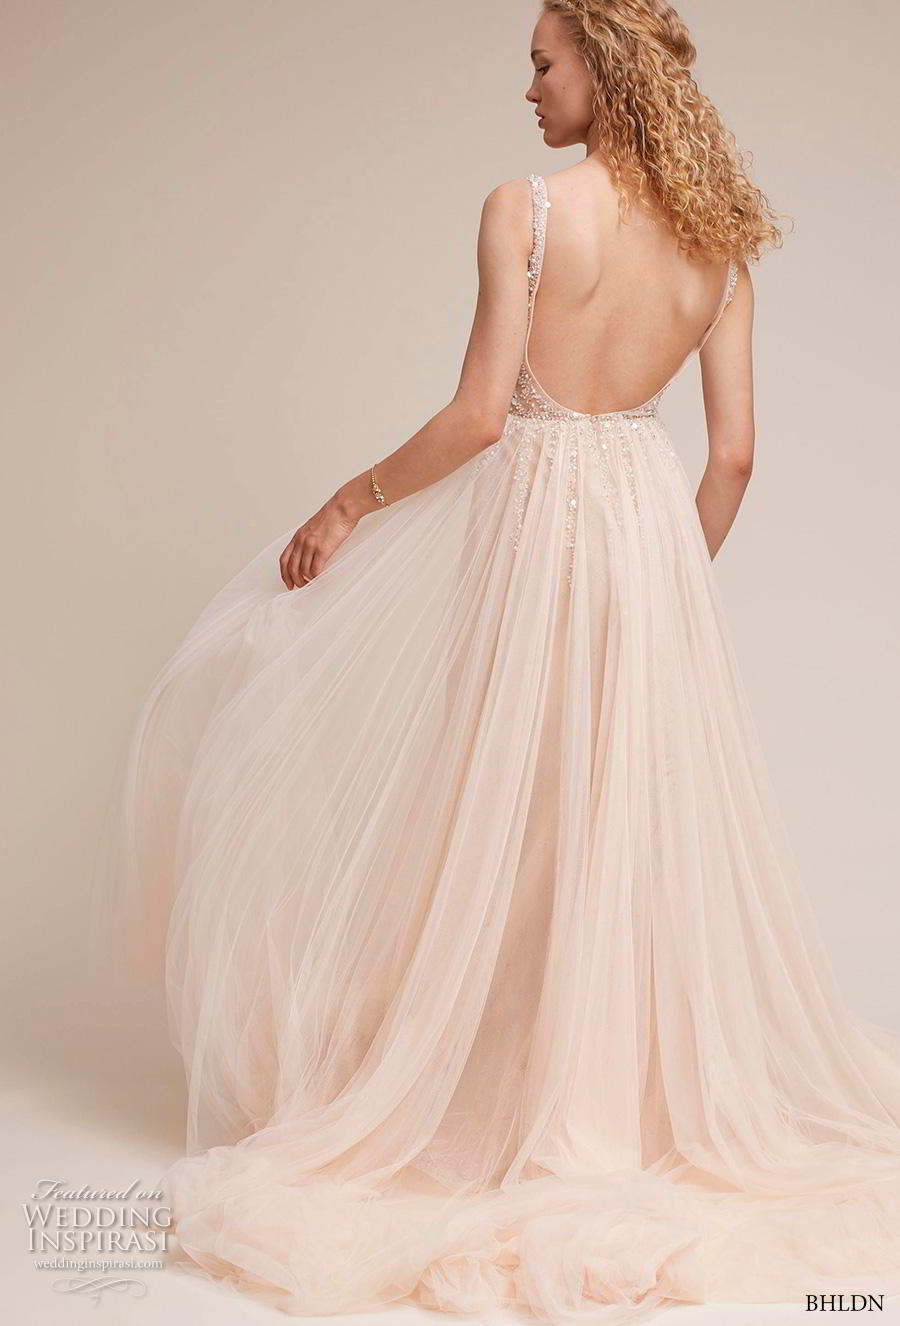 bhldn 2018 own bridal sleeveless v neck heavily embellished bodice tulle skirt glitzy romantic blush soft a  line wedding dress backless scoop back chapel train (6) bv